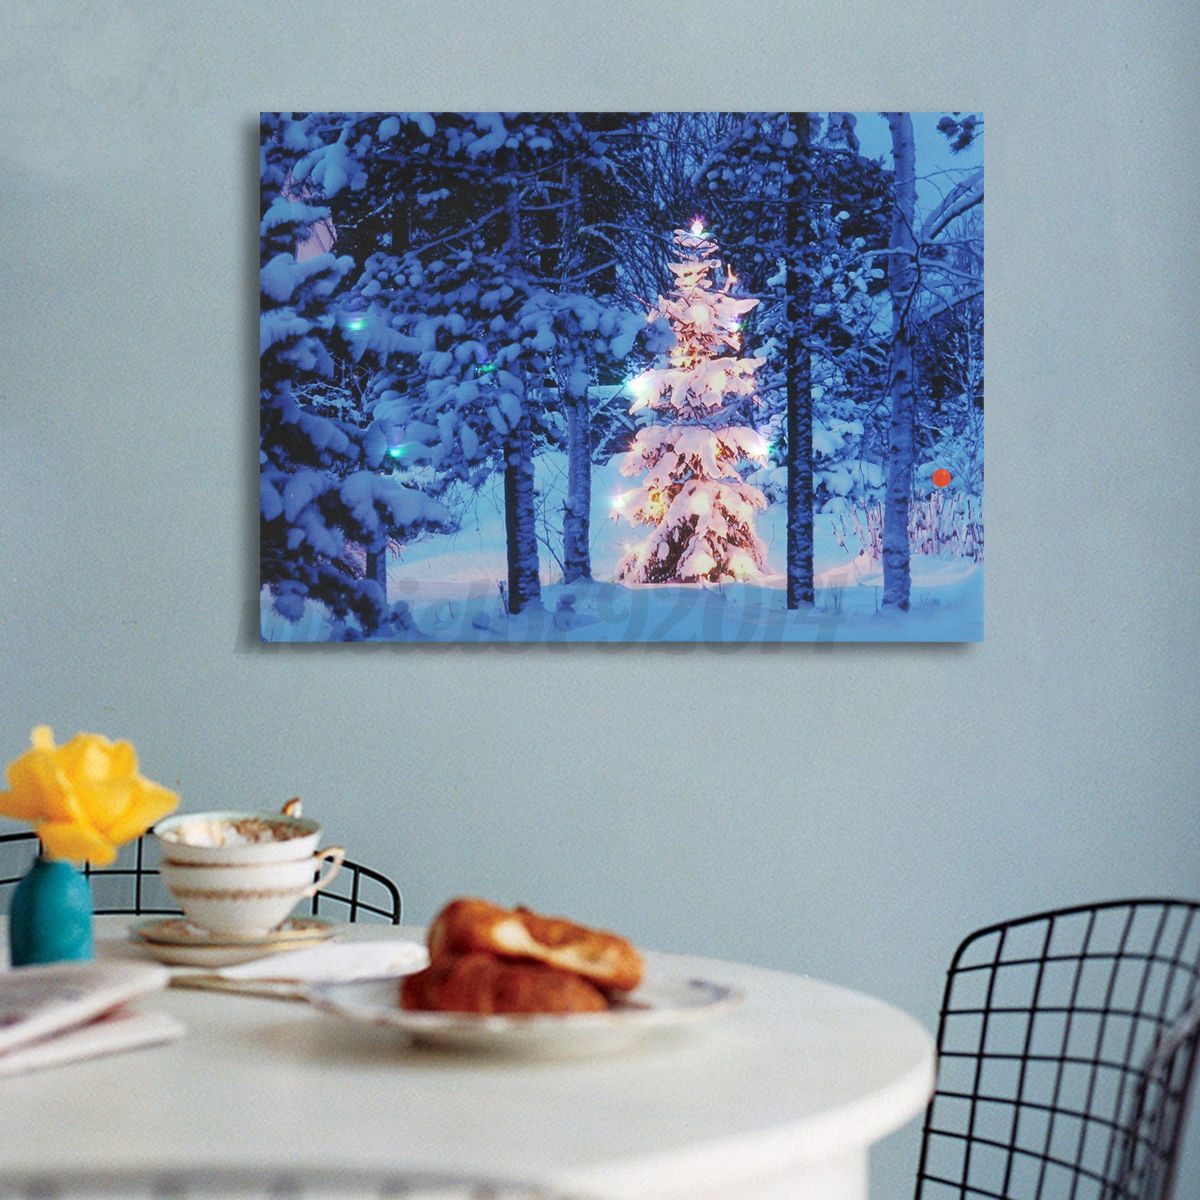 Led light up christmas canvas pictures 30x40cm xmas for Light up christmas decorations